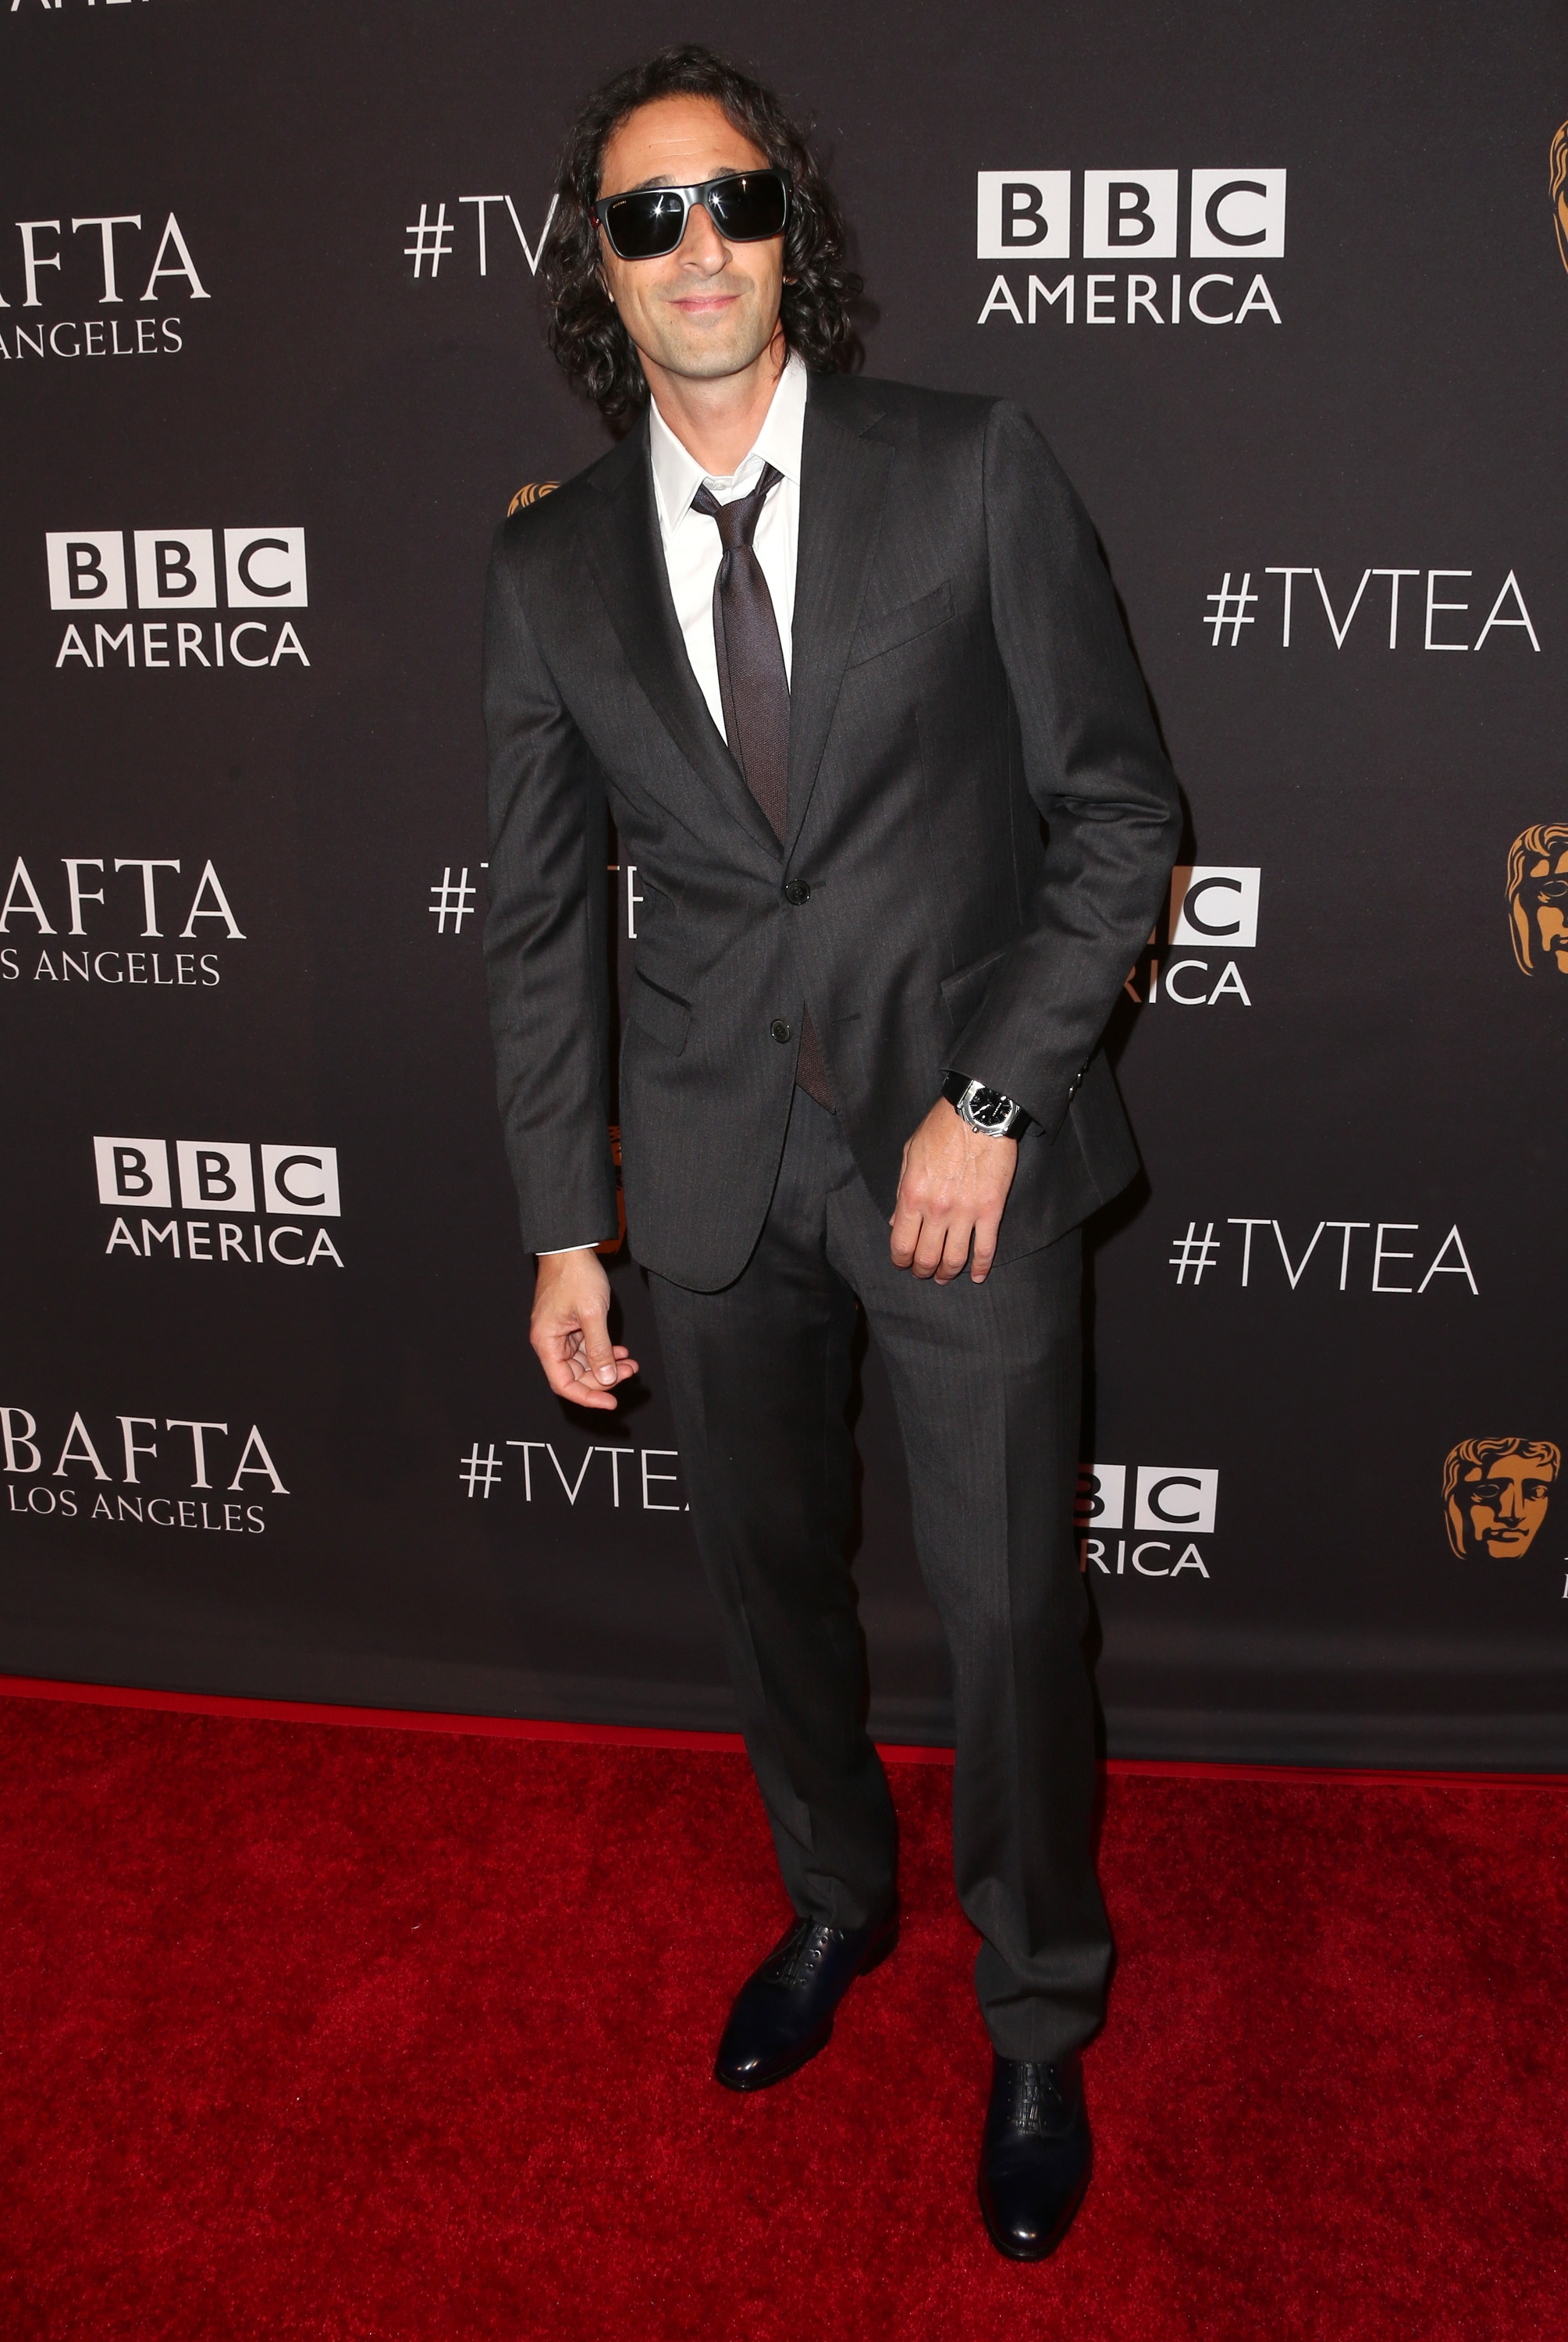 Emmy weekend BEVERLY HILLS, CA - SEPTEMBER 19: Actor Adrien Brody attends the 2015 BAFTA Los Angeles TV Tea at SLS Hotel on September 19, 2015 in Beverly Hills, California. (Photo by Frederick M. Brown/Getty Images)